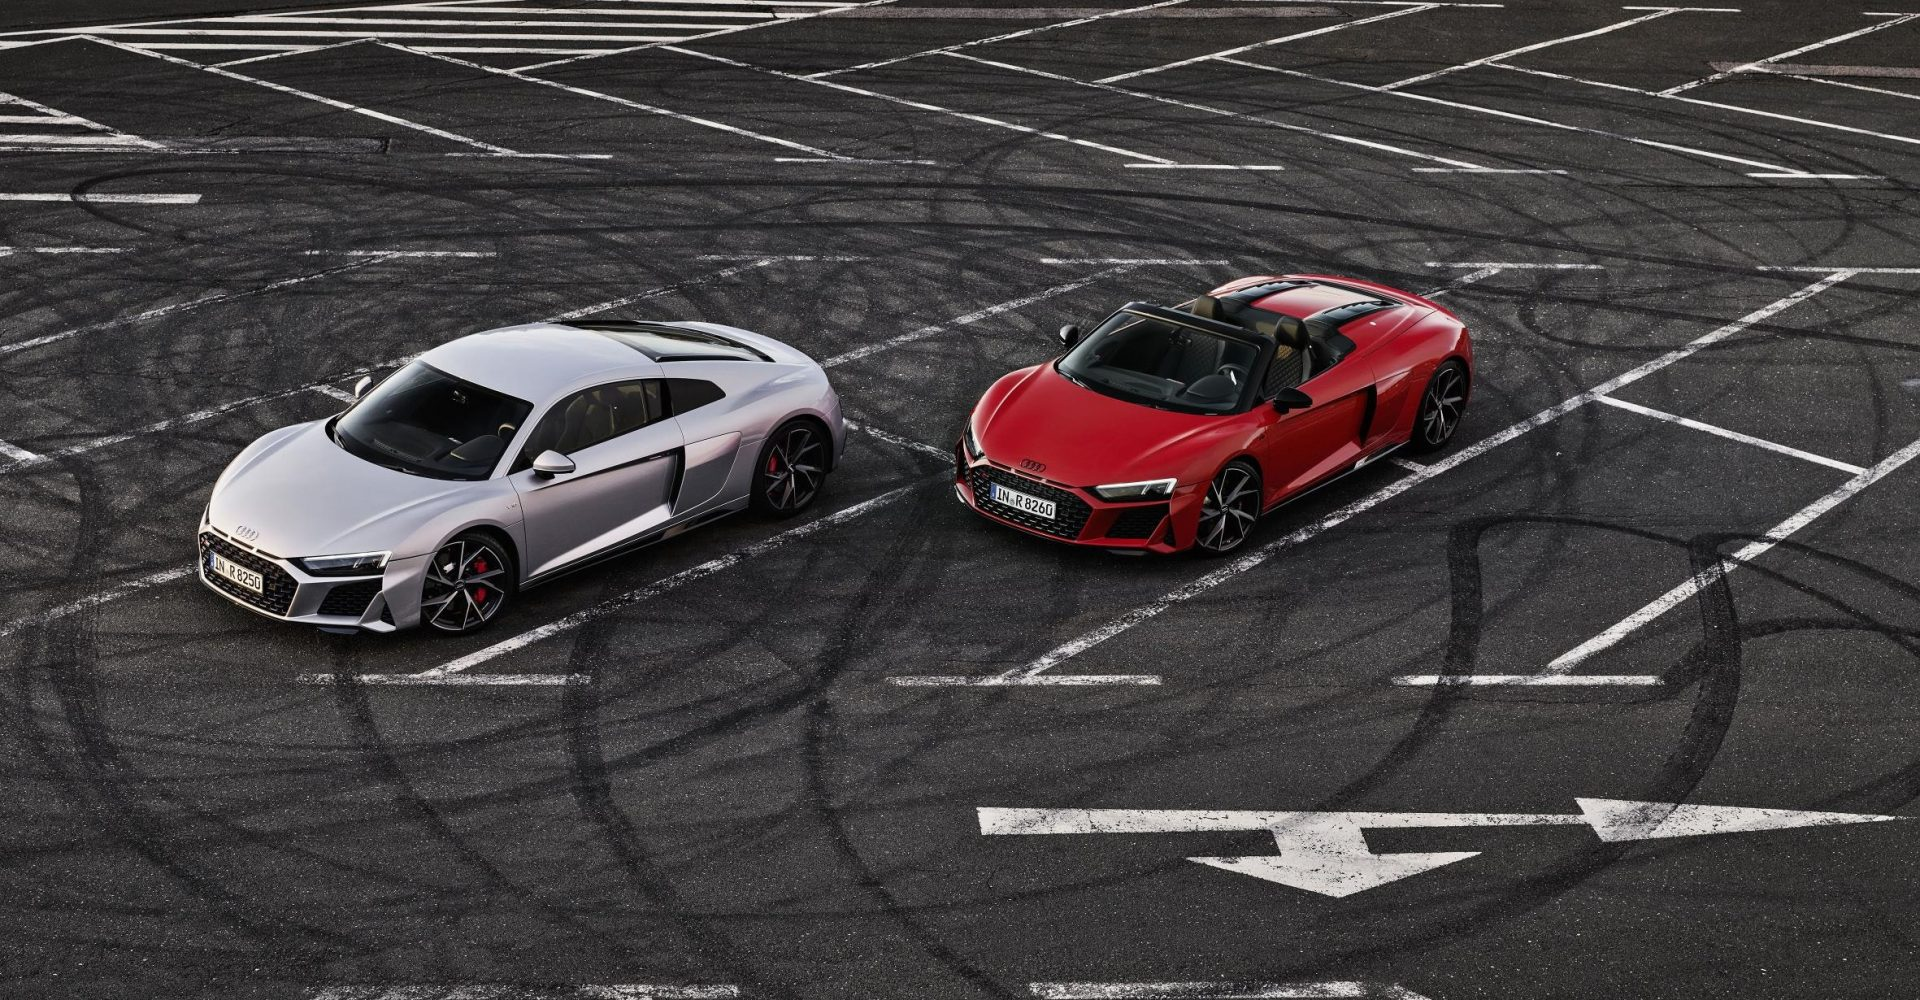 Audi introduces rear-wheel-drive R8 to supercar line-up